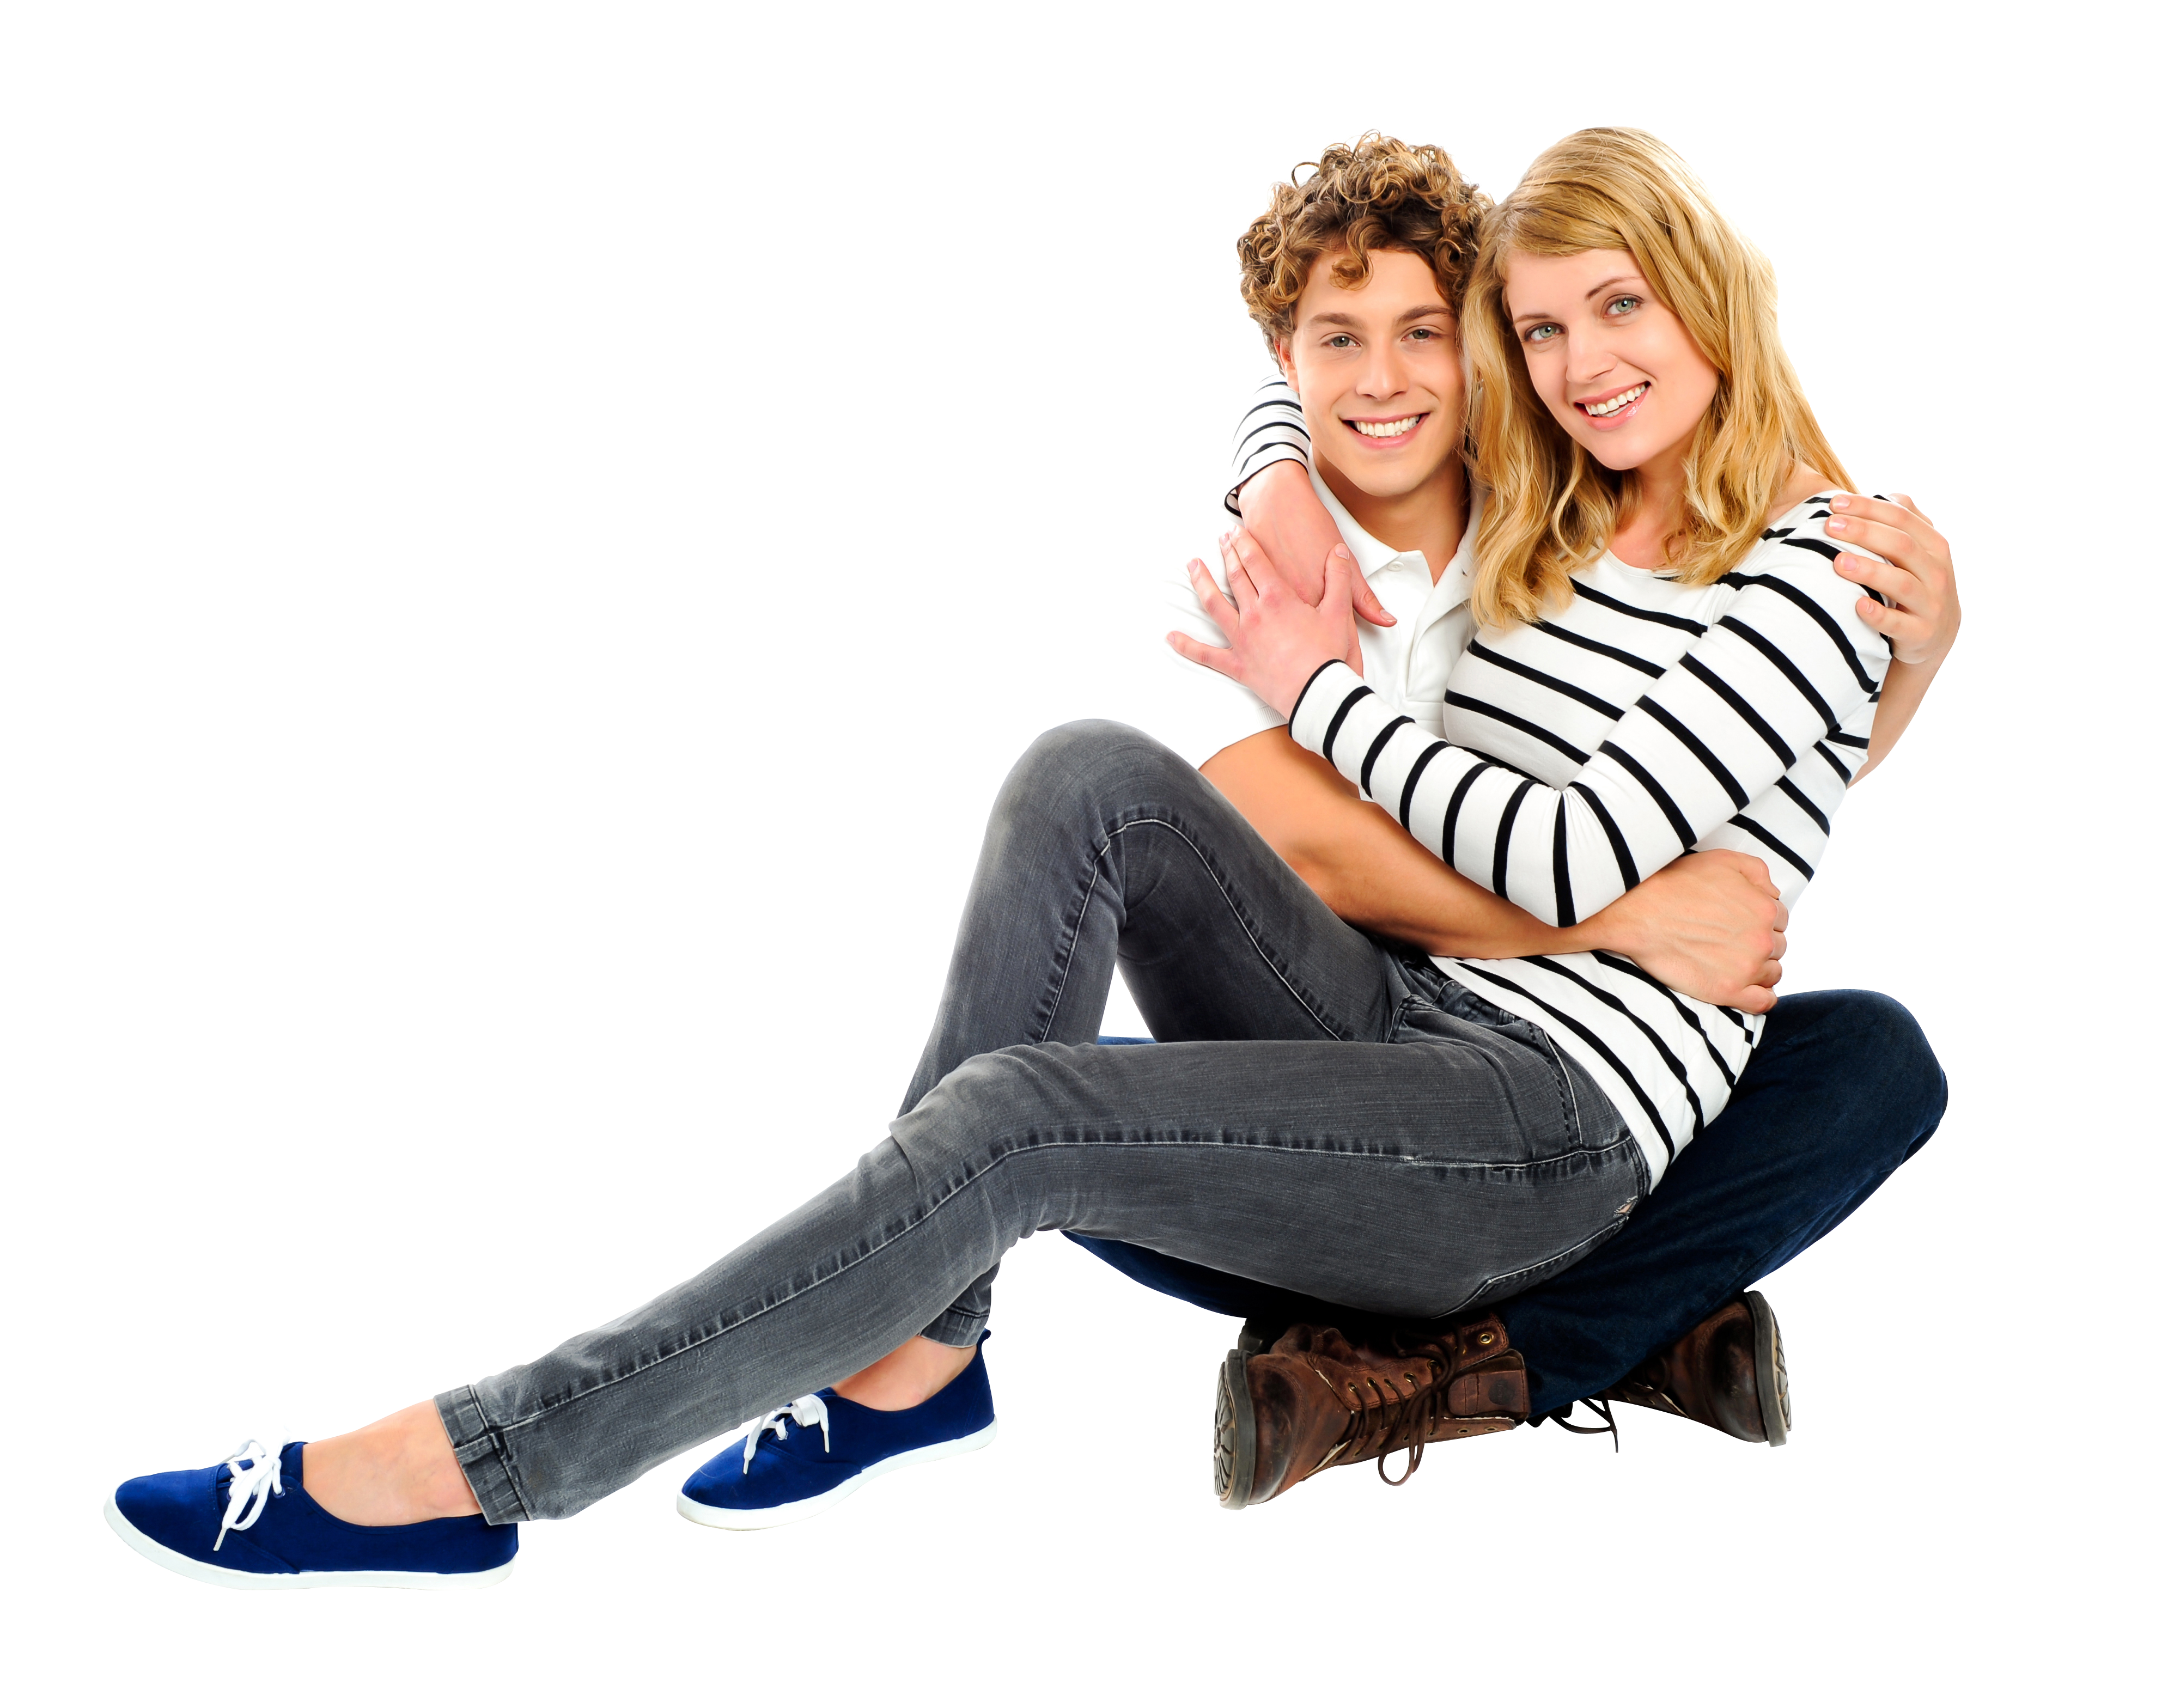 Couple sitting png. Love image purepng free